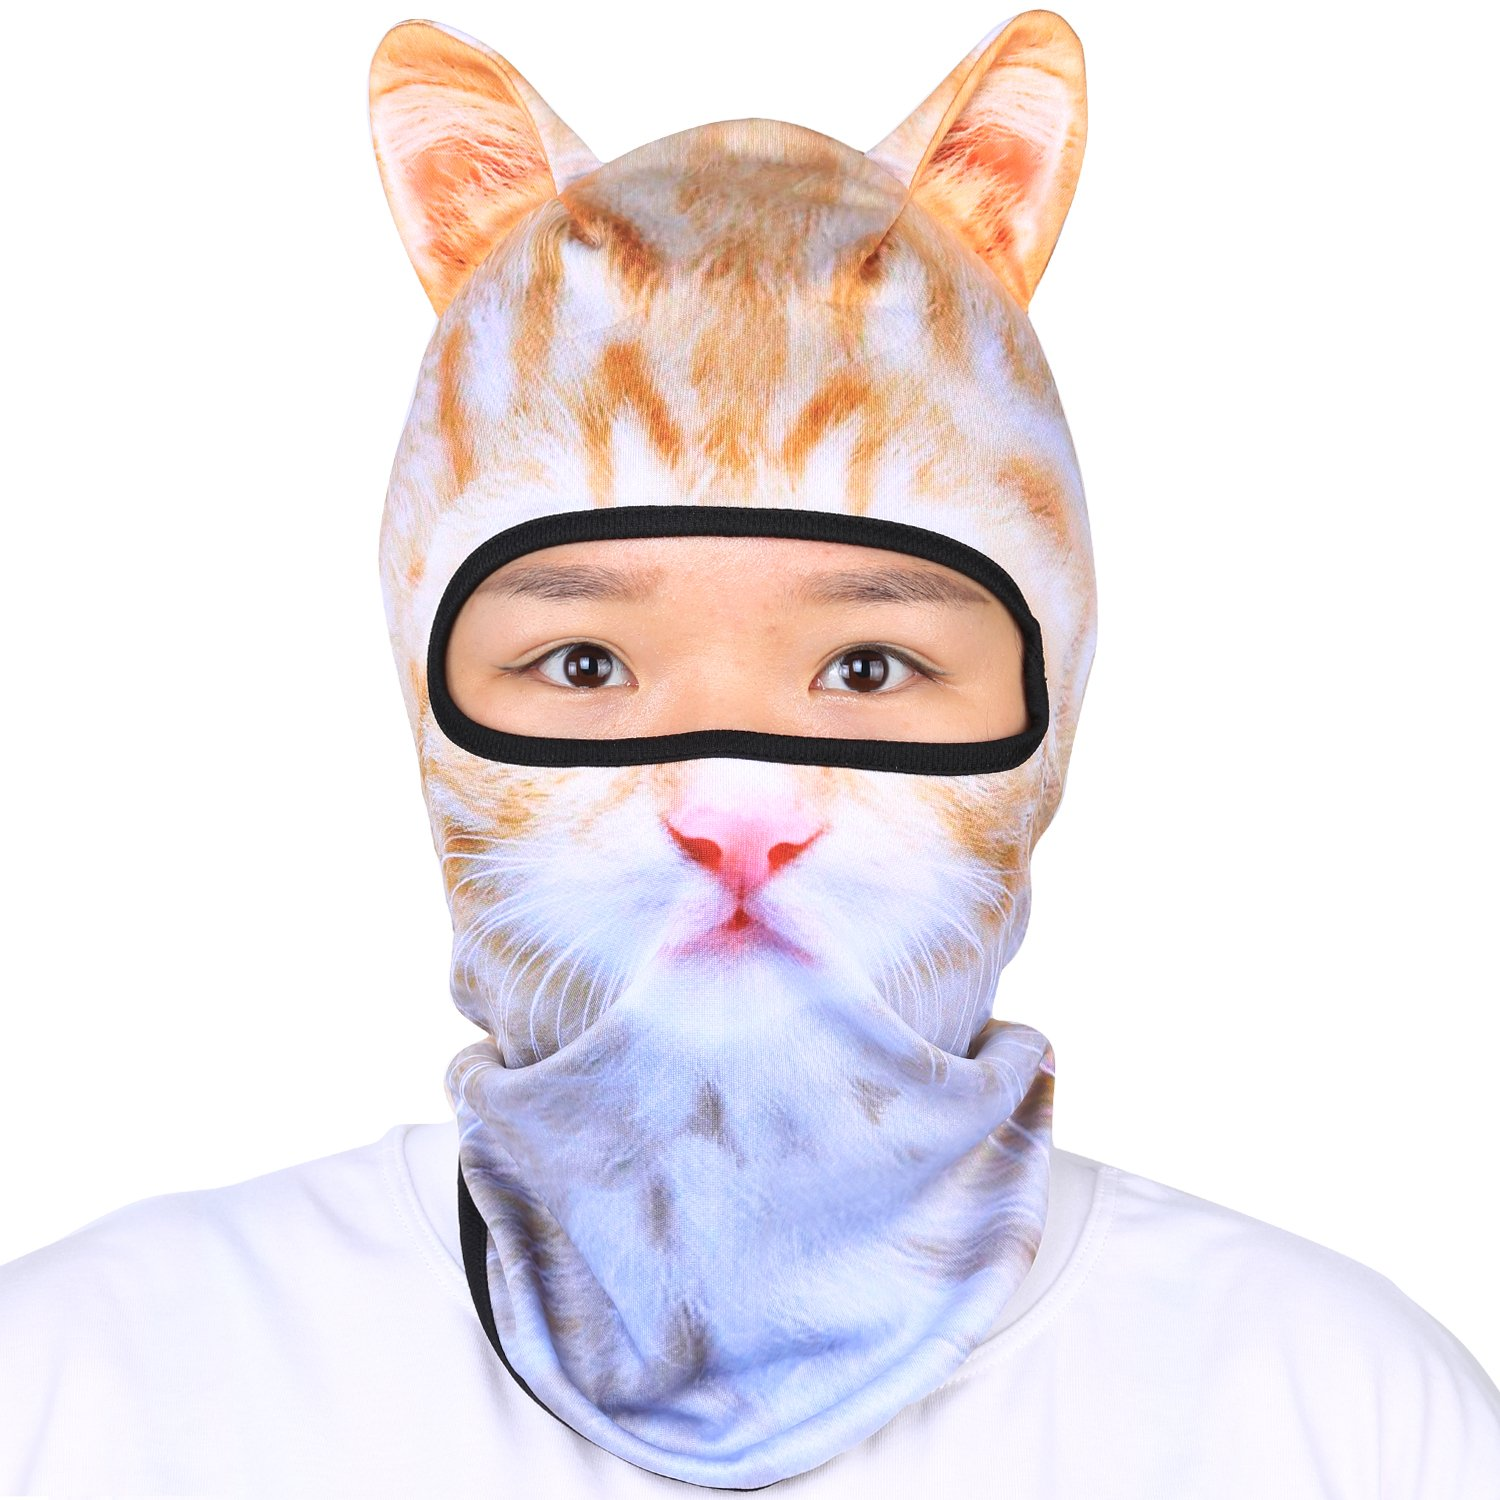 Oumers Animal Balaclava Face Mask with Ears Breathable Hood Face Shield for Outdoor Sports Cycling Motorcycle Ski Halloween Party Gift, One Size Fit Most (Women/Men)-White-Grey Color Cat